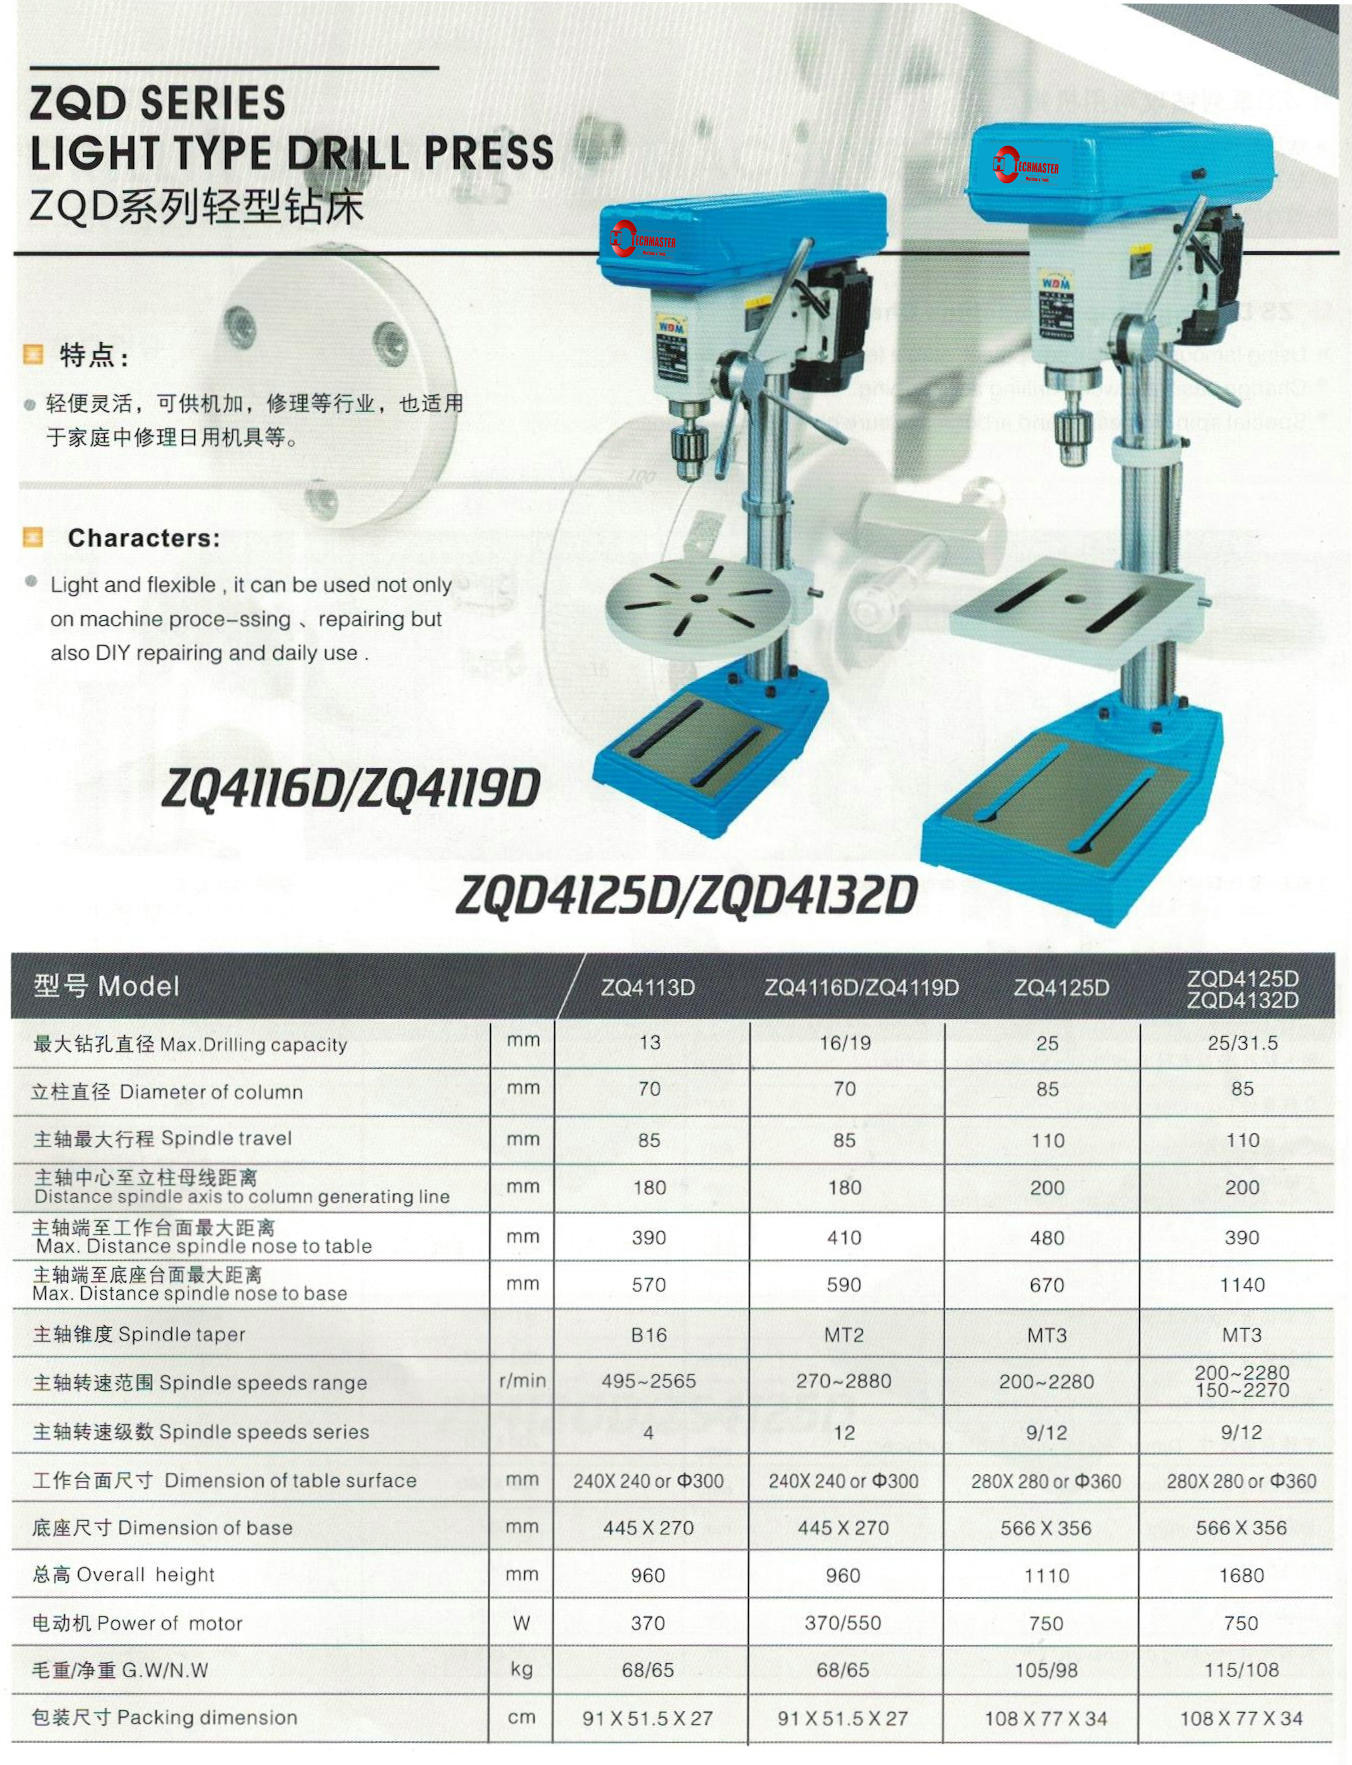 ZQD SERIES LIGHT TYPE DRILL PRESS ZQ4119D